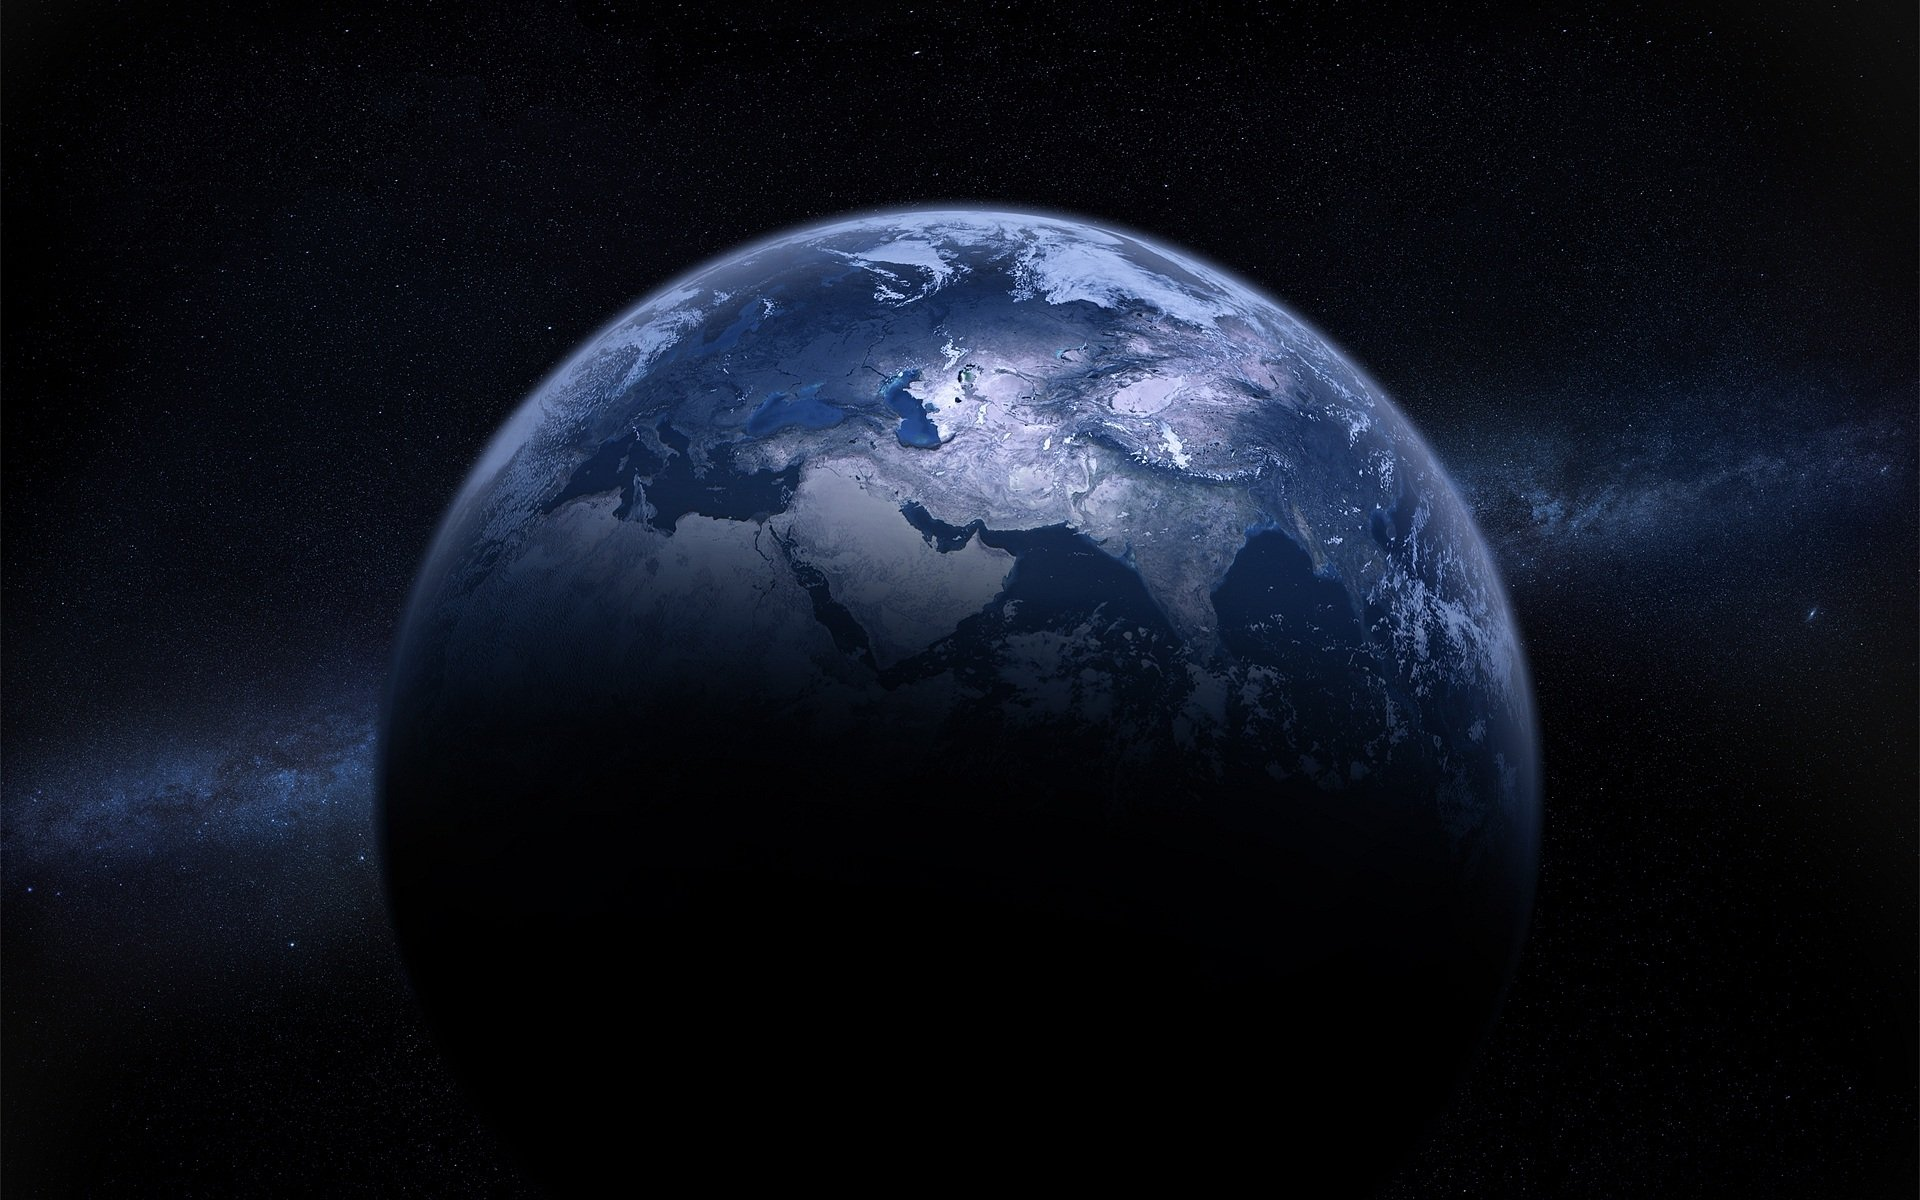 Earth From Space Wallpaper 1920x1200 Earth From Space 1920x1200